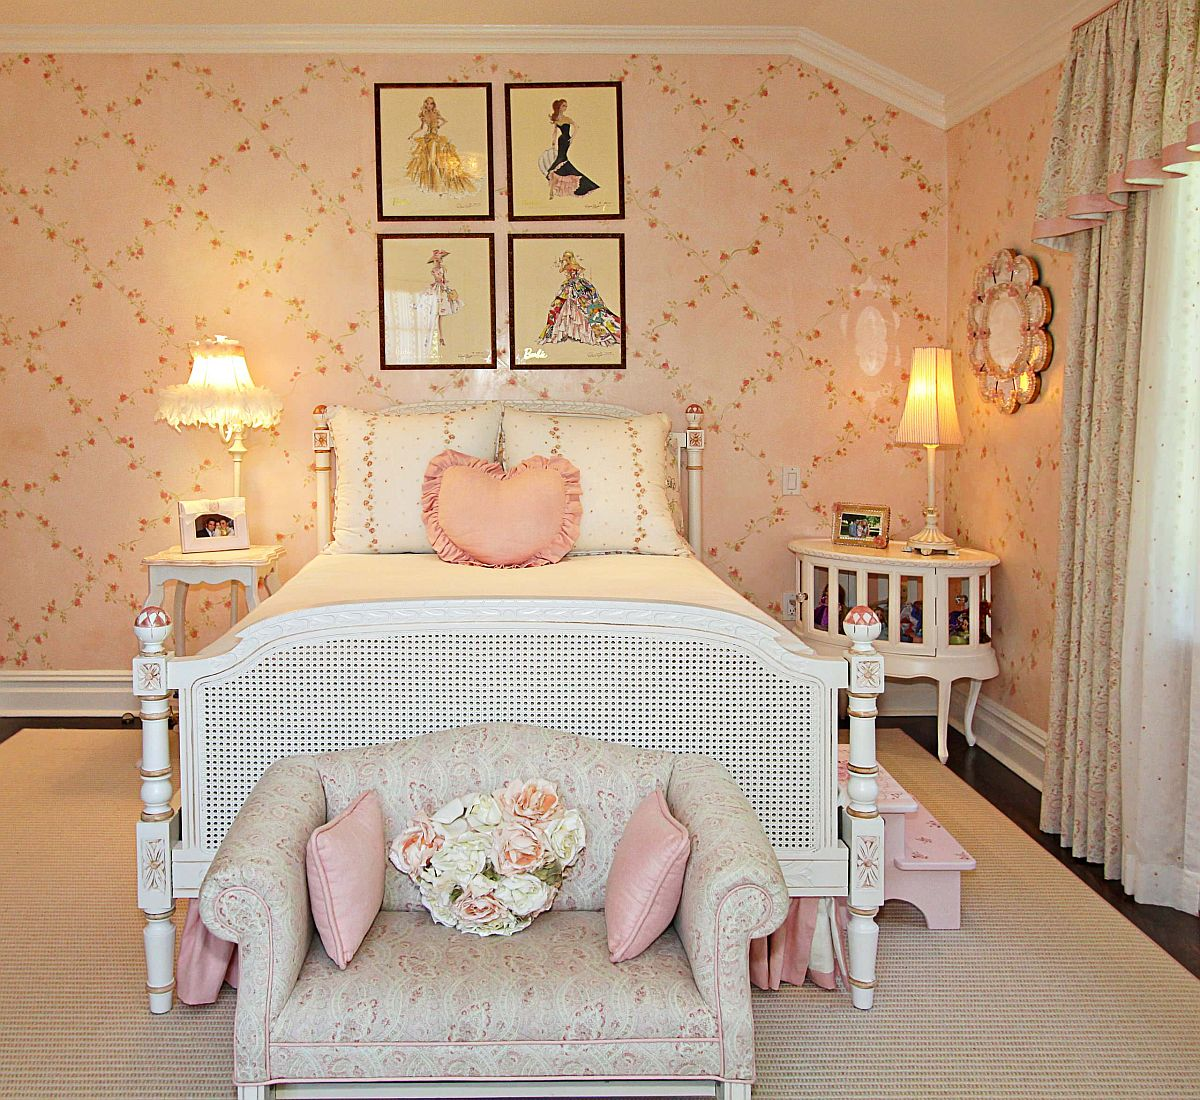 Bedroom with floral prints and pink walls for your little princess